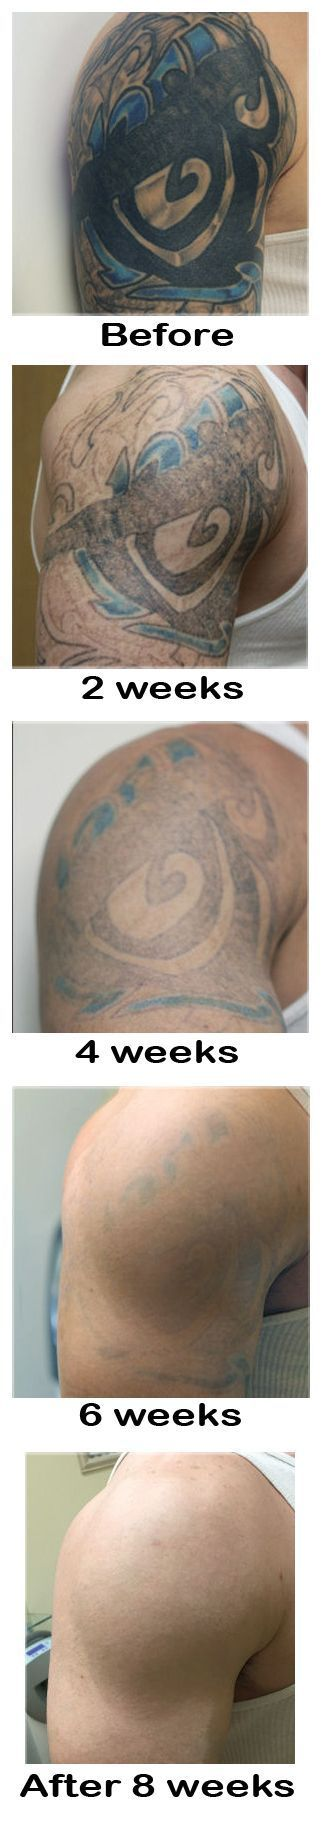 Tattoo after 8 weeks. Lemon + this ingredient can take it off. Learn more about laserless tattoo removal here: http://laserlesstattooremoval.tattooroman.com #tattoo #tattoos #cover_up_tattoos #tattoo_cover_up #tattoo_removal  #tattoos_for_women #temporary_tattoos #laser_tattoo_removal #tattoo_removal_cream #tattoo_removal_before_after #home_tattoo_removal #remove_tattoo_at_home #removal_cream #permanent_makeup #cosmetic_tattooing #permanent_makeup_remove #cosmetic_tattooing_remove…